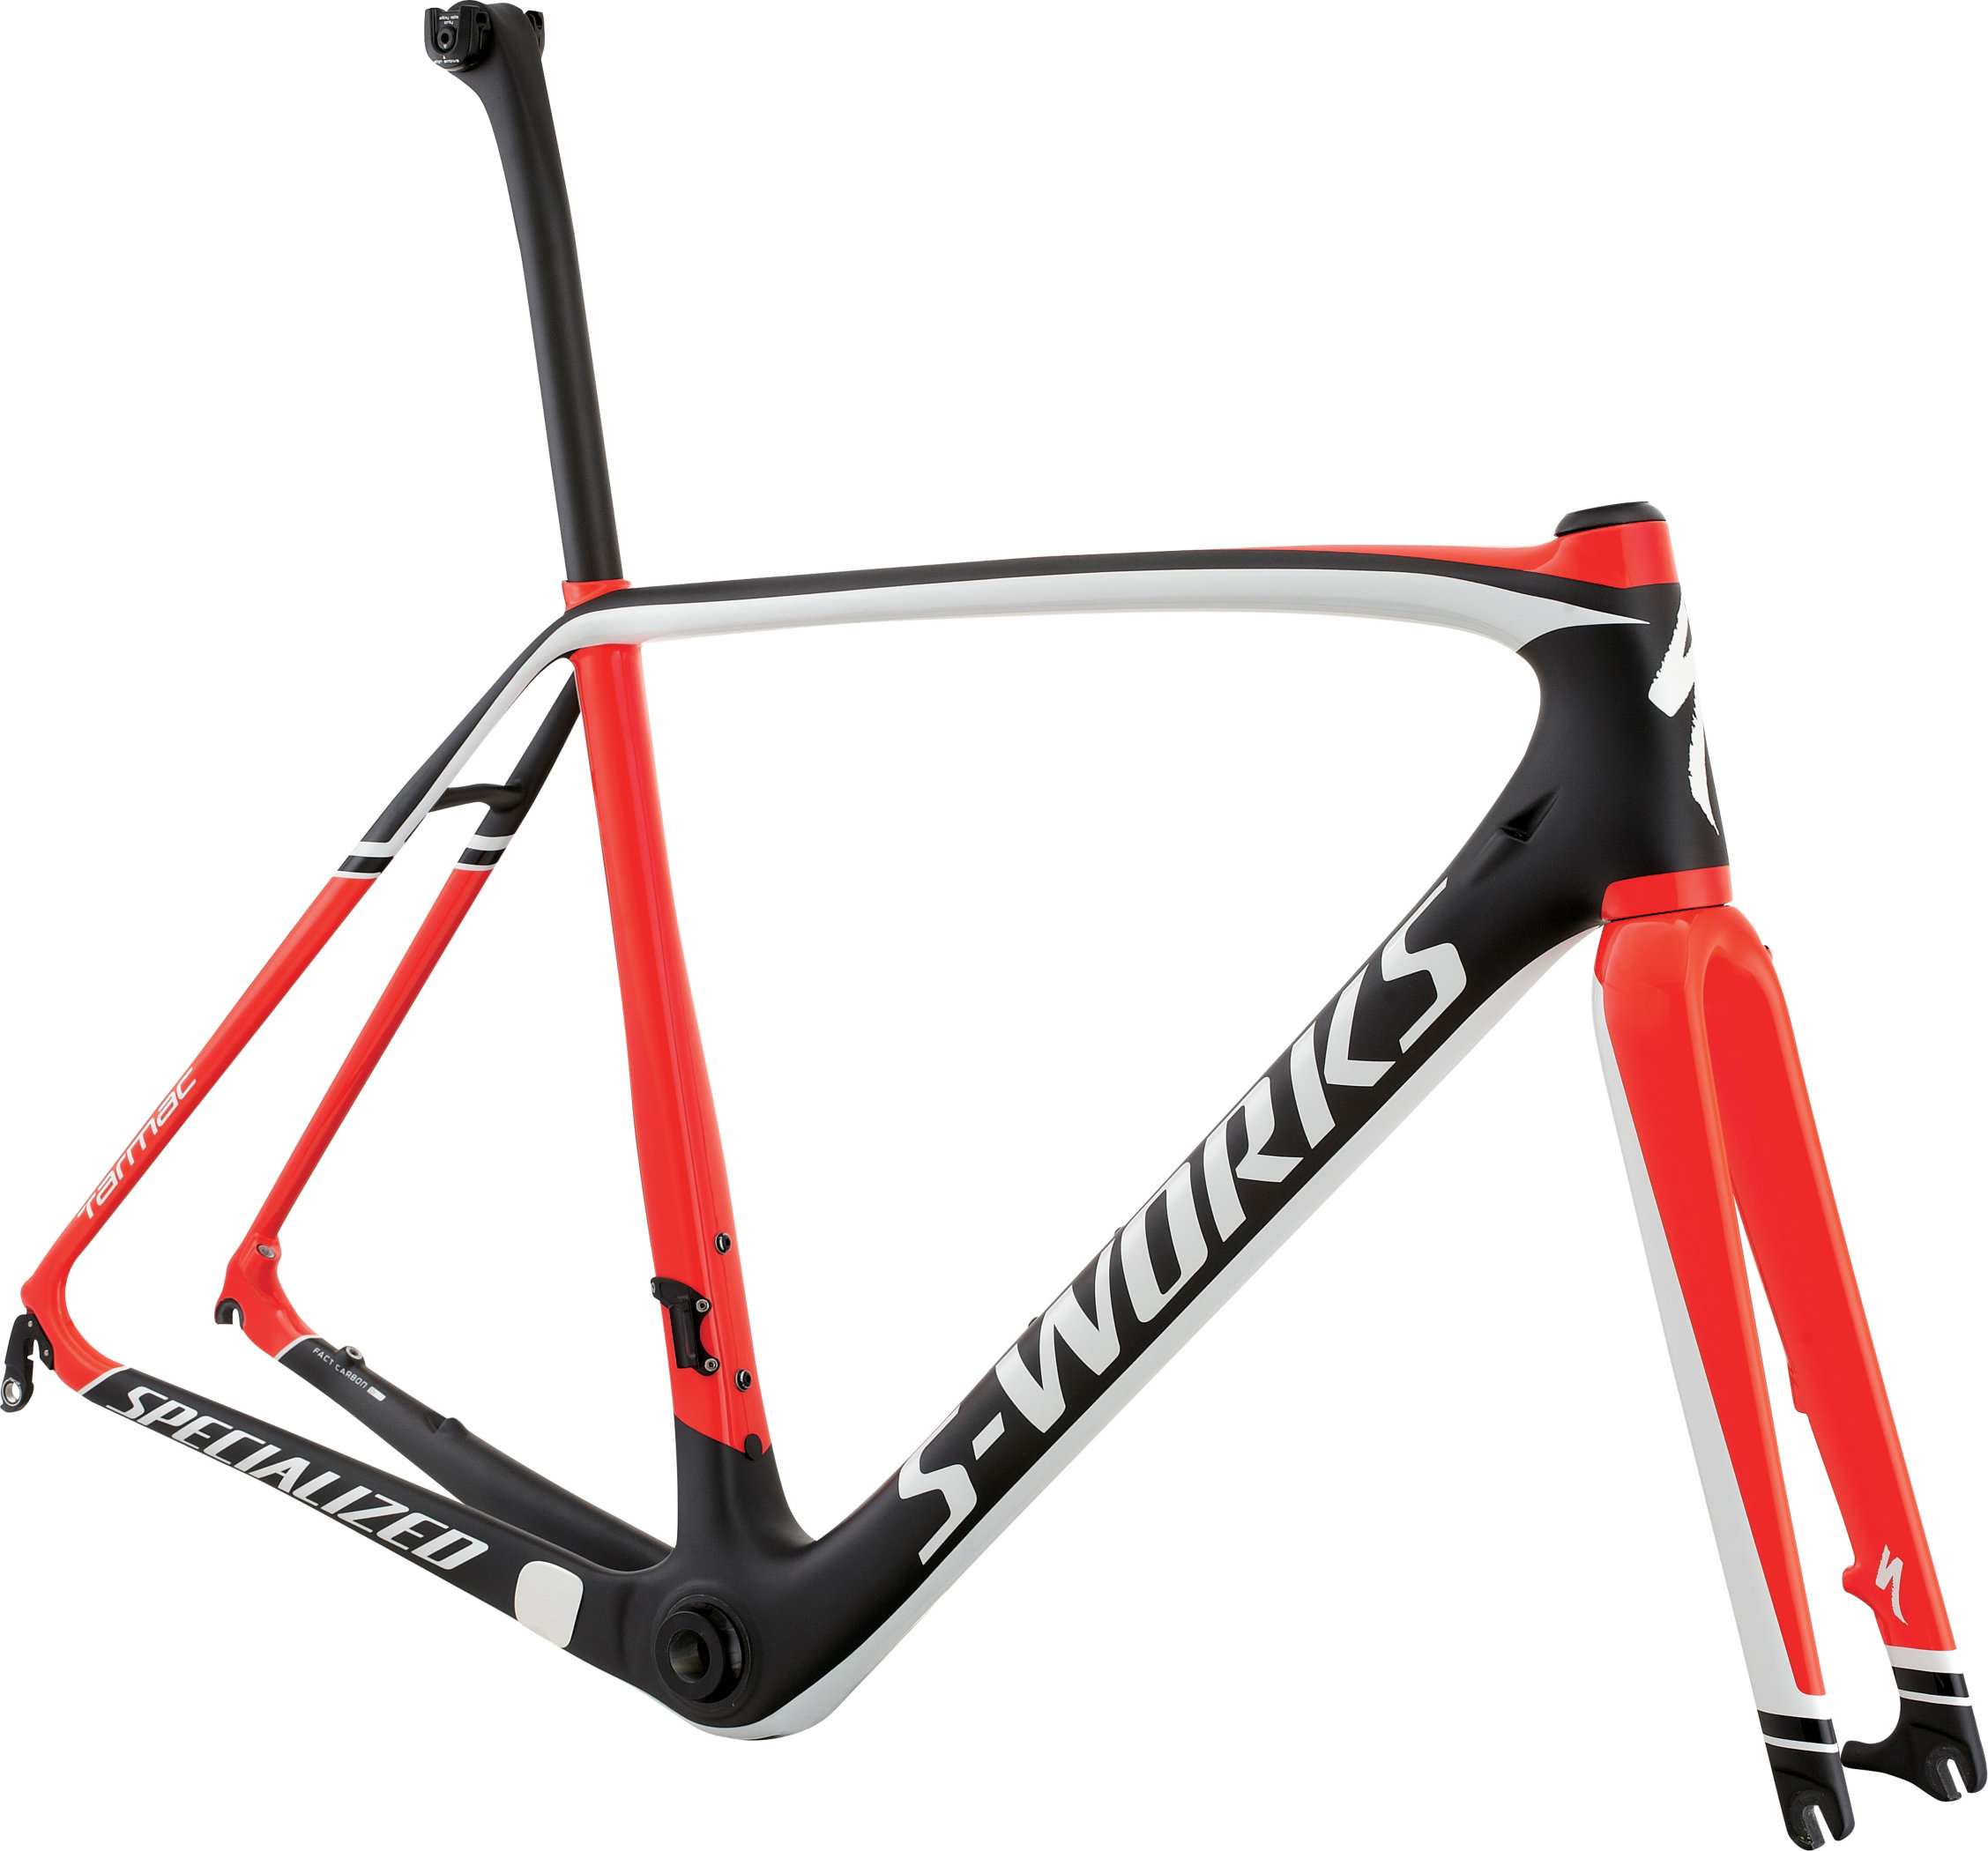 SPECIALIZED SW TARMAC DISC FRMSET CARB/RKTRED/WHT 54 - SPECIALIZED SW TARMAC DISC FRMSET CARB/RKTRED/WHT 54